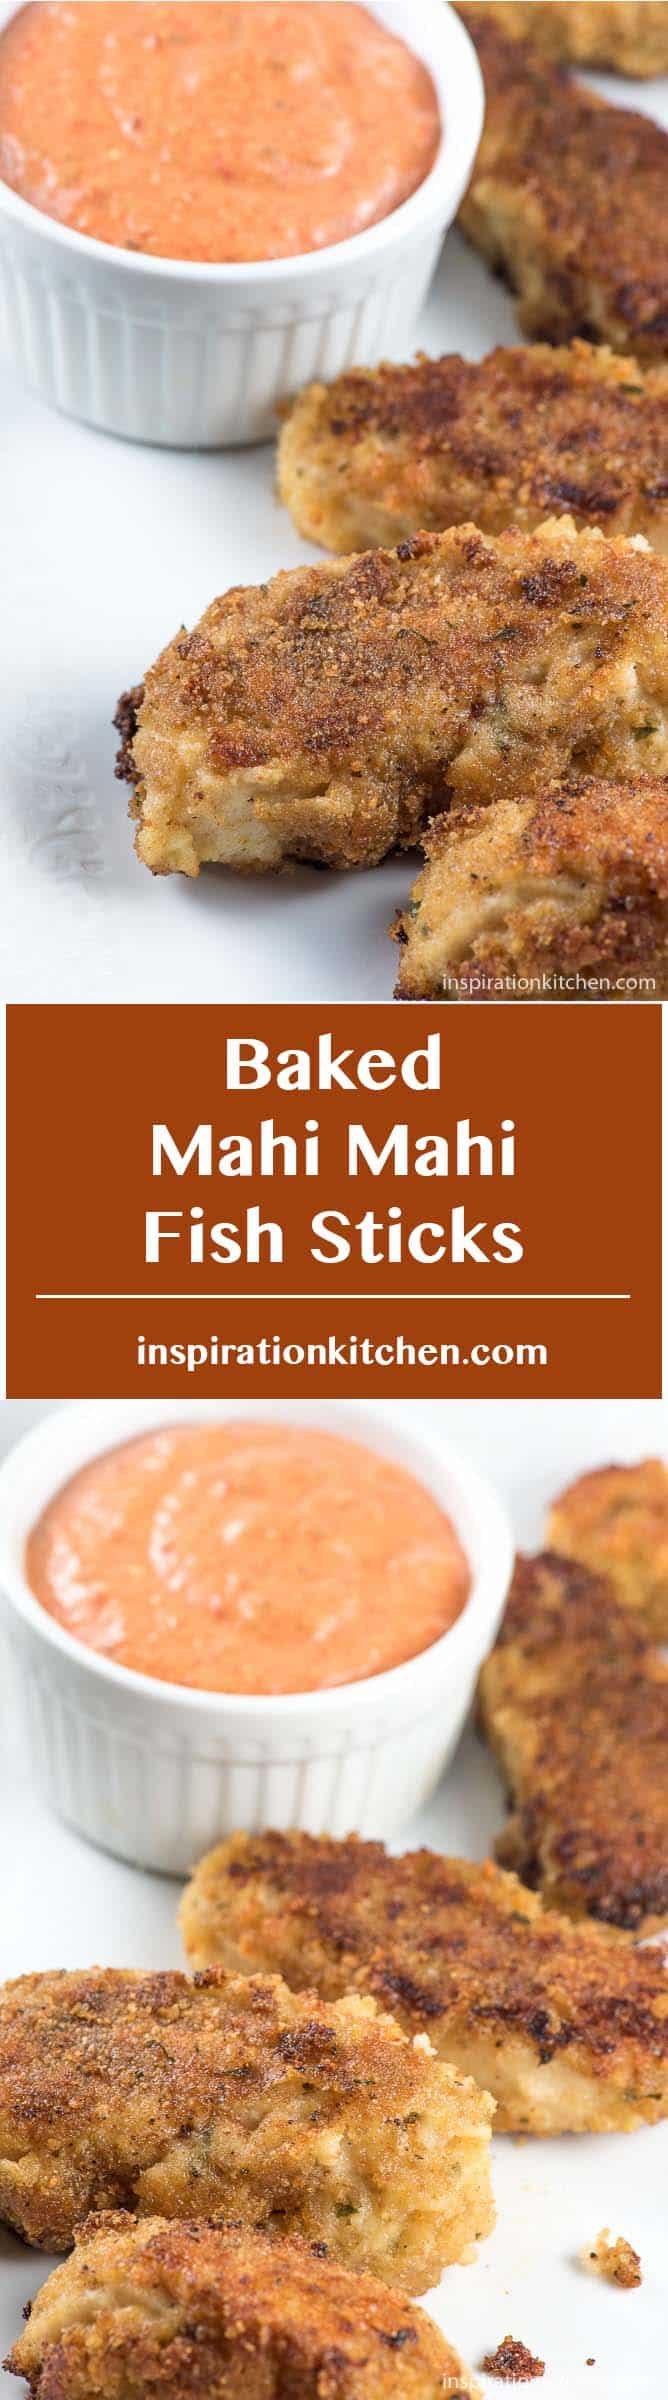 Baked Mahi Mahi Fish Sticks - inspirationktichen.com